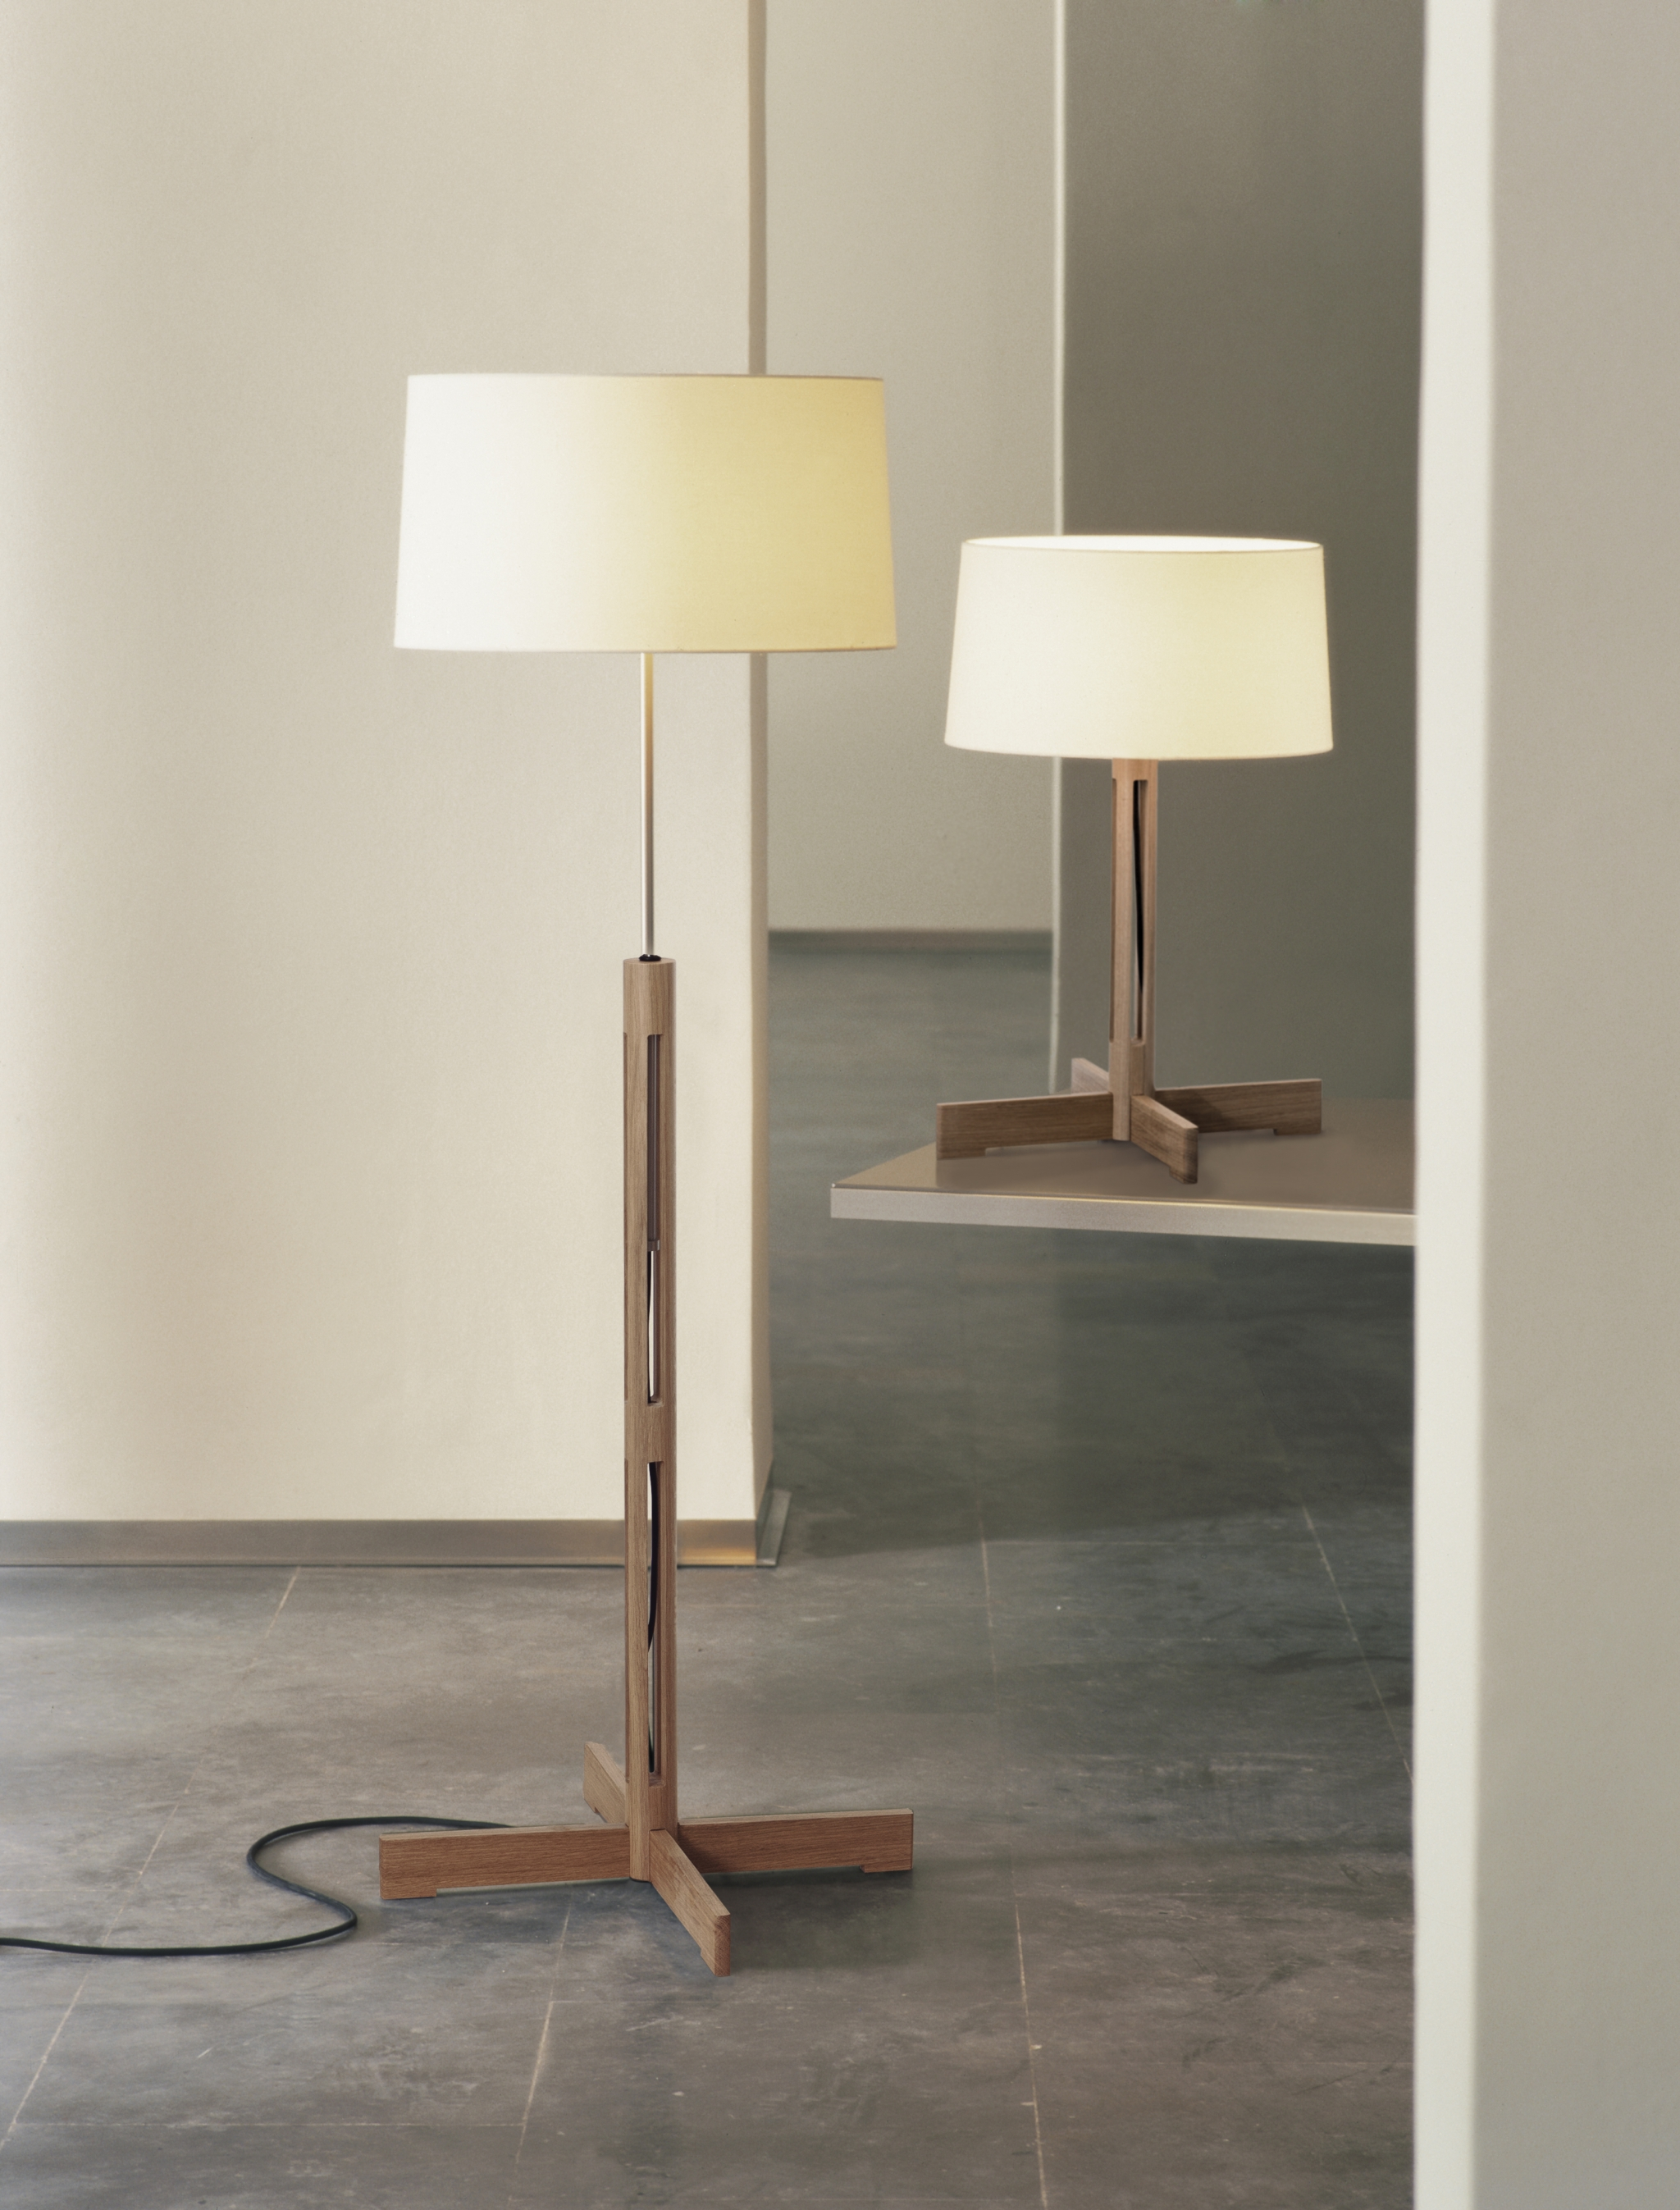 Floor lamps produced by Lampada Corporation 31